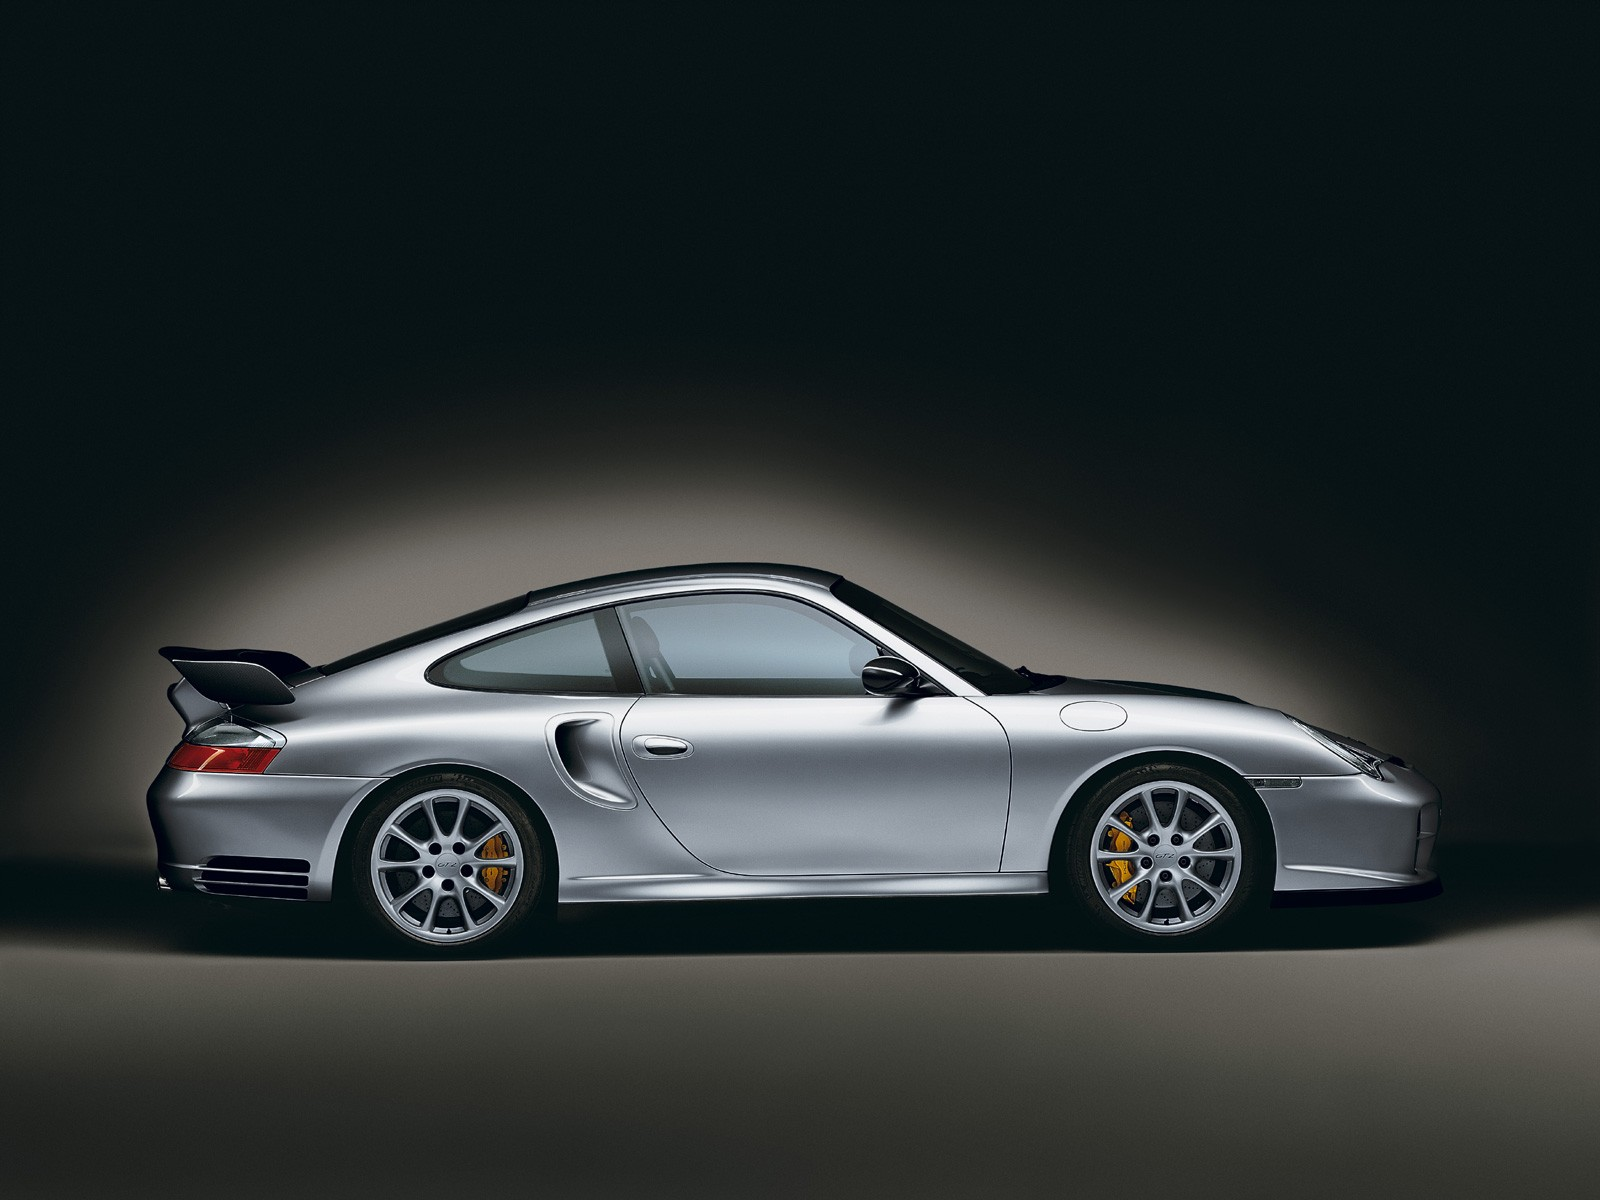 porsche 911 gt2 996 specs 2001 2002 2003 2004 2005 2006 autoevolution. Black Bedroom Furniture Sets. Home Design Ideas